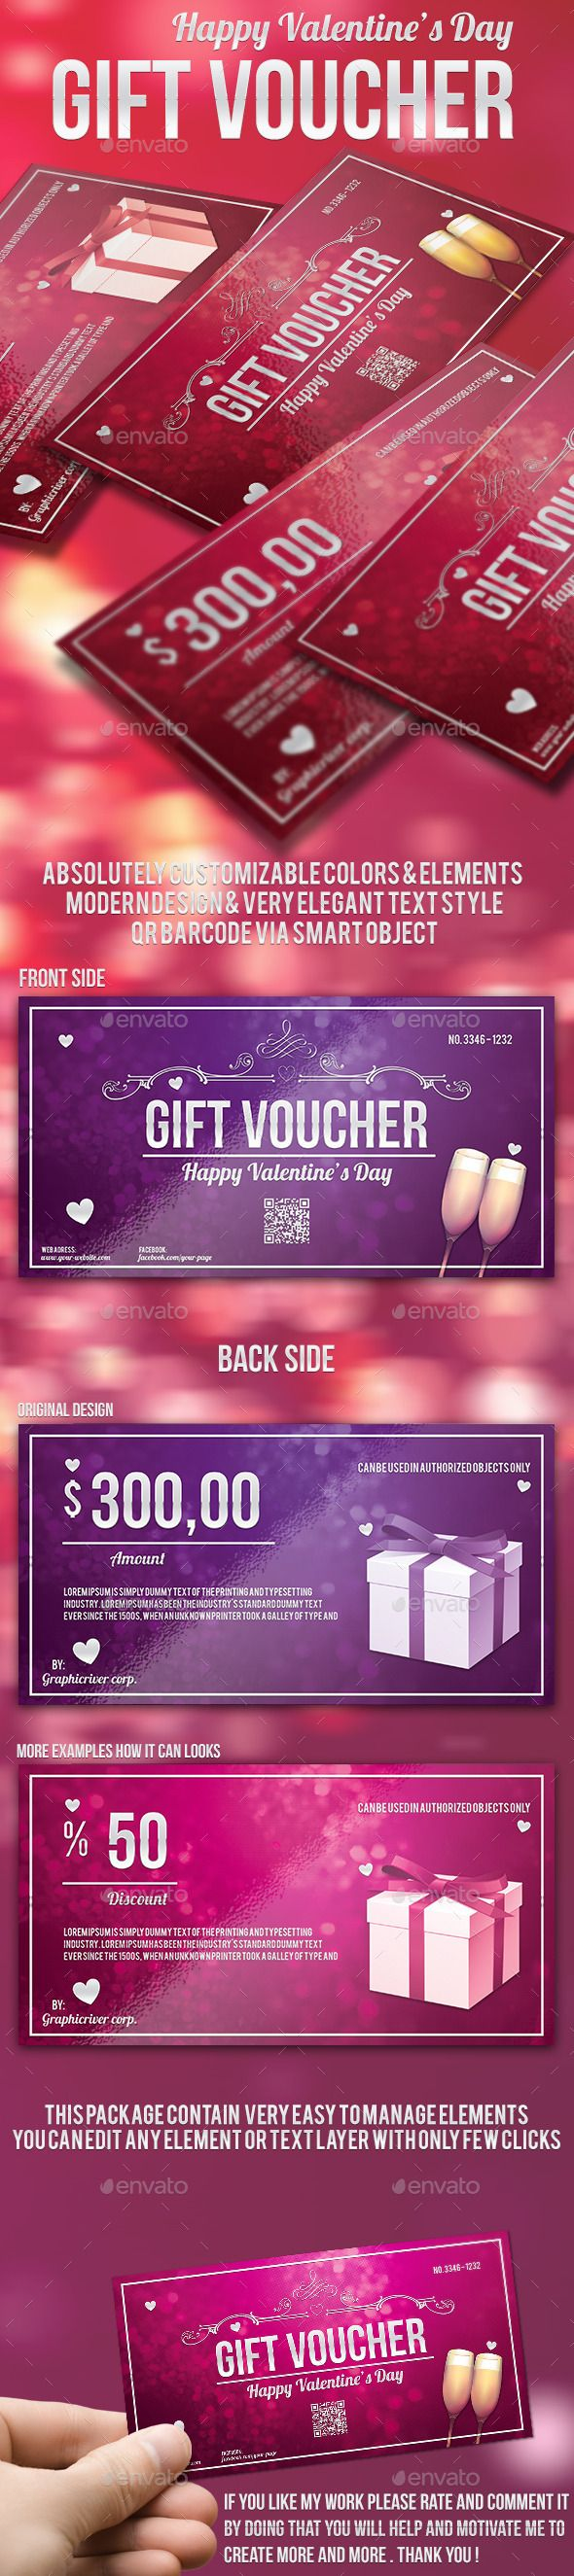 Valentine's Day Gift Voucher Template PSD | Download: http://graphicriver.net/item/valentines-day-gift-voucher/10010177?ref=ksioks